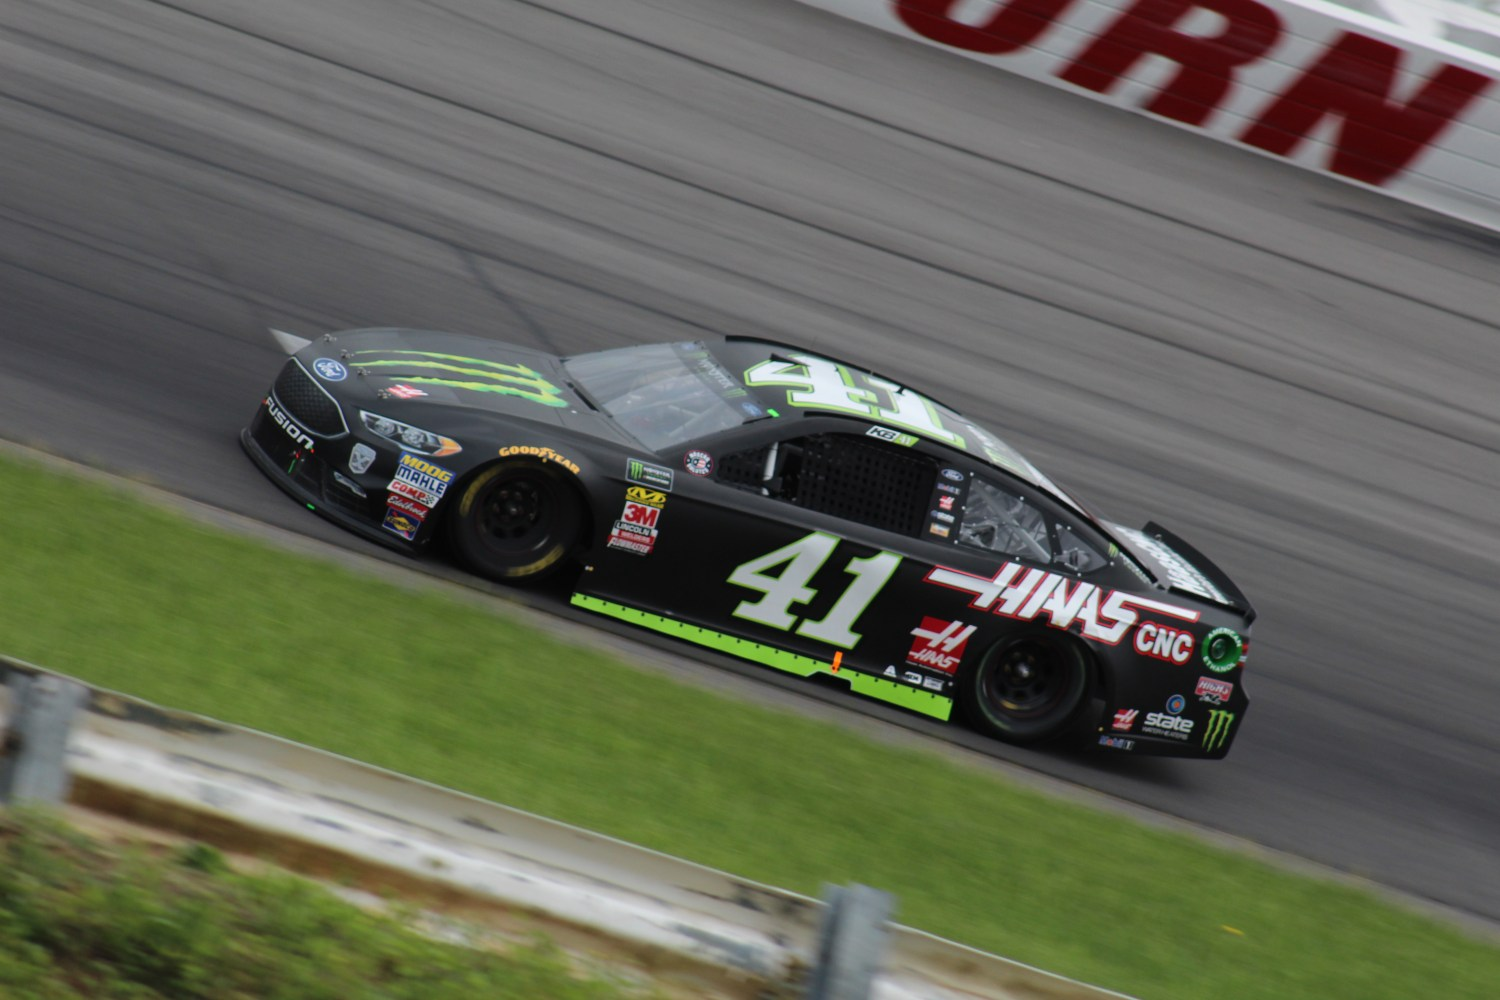 Kurt Busch races during the 2018 Pocono 400. (Tyler Head | The Racing Experts)